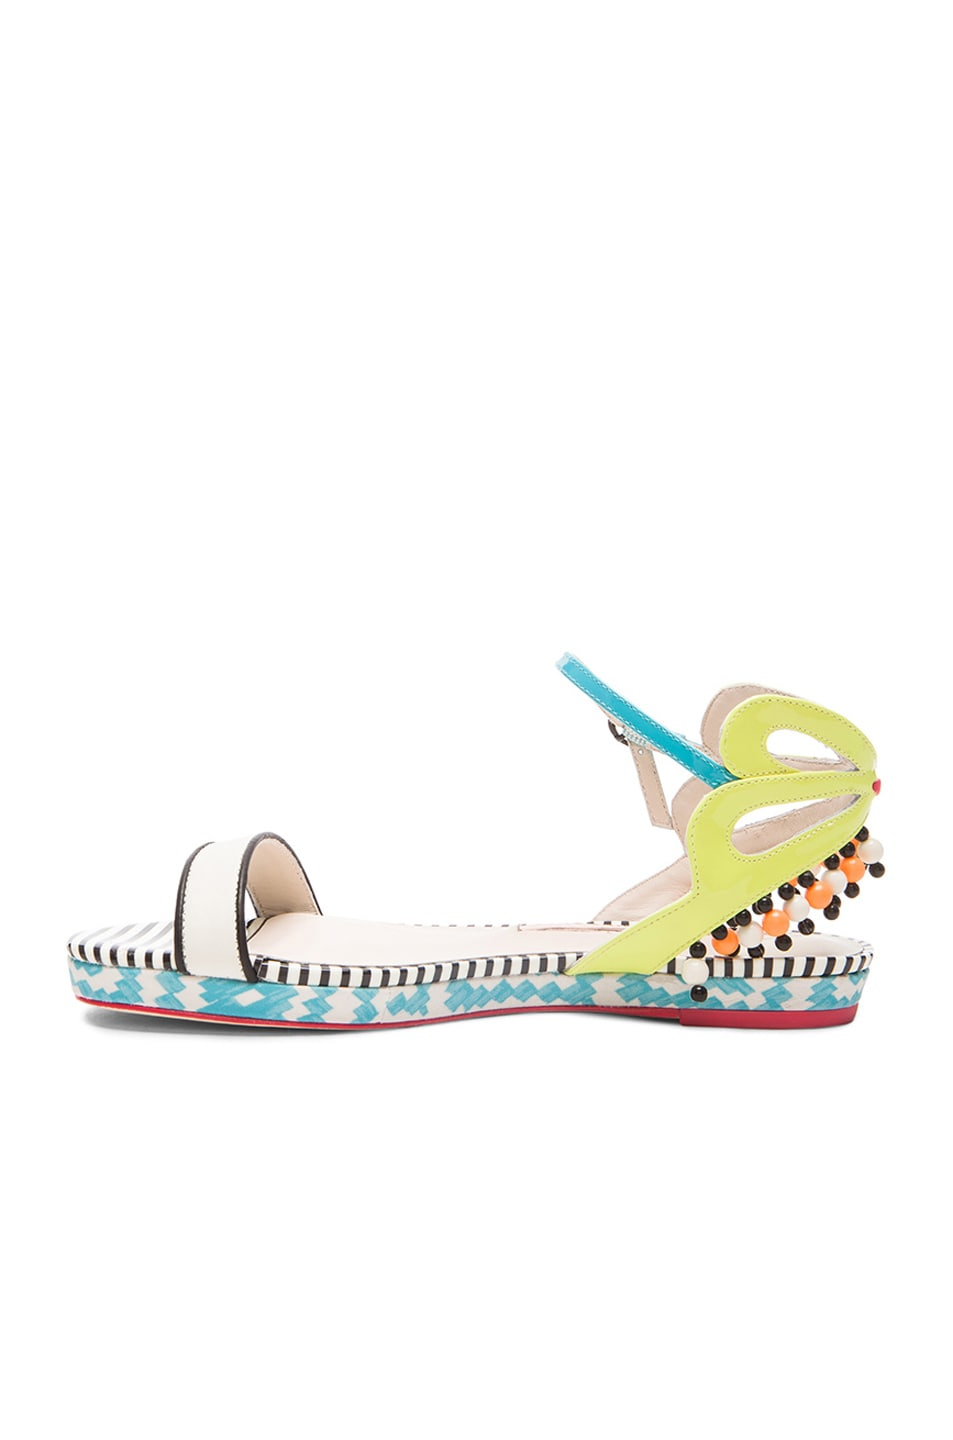 Image 5 of Sophia Webster Luca Aztec Patent Leather Sandals in Blue & White